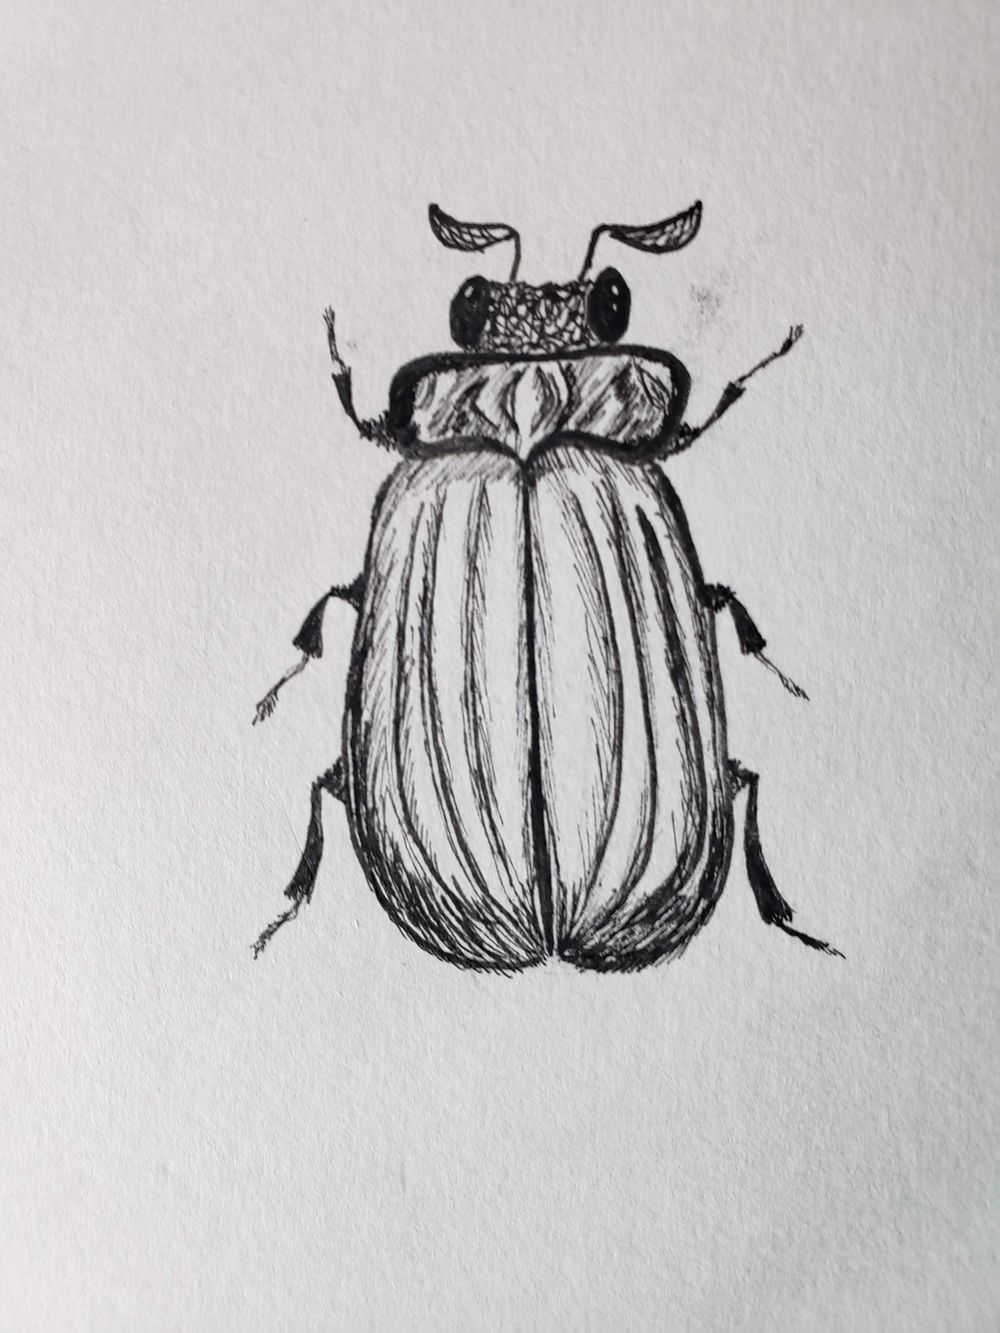 Beetles, Butterflies, and Broken Rules - image 3 - student project